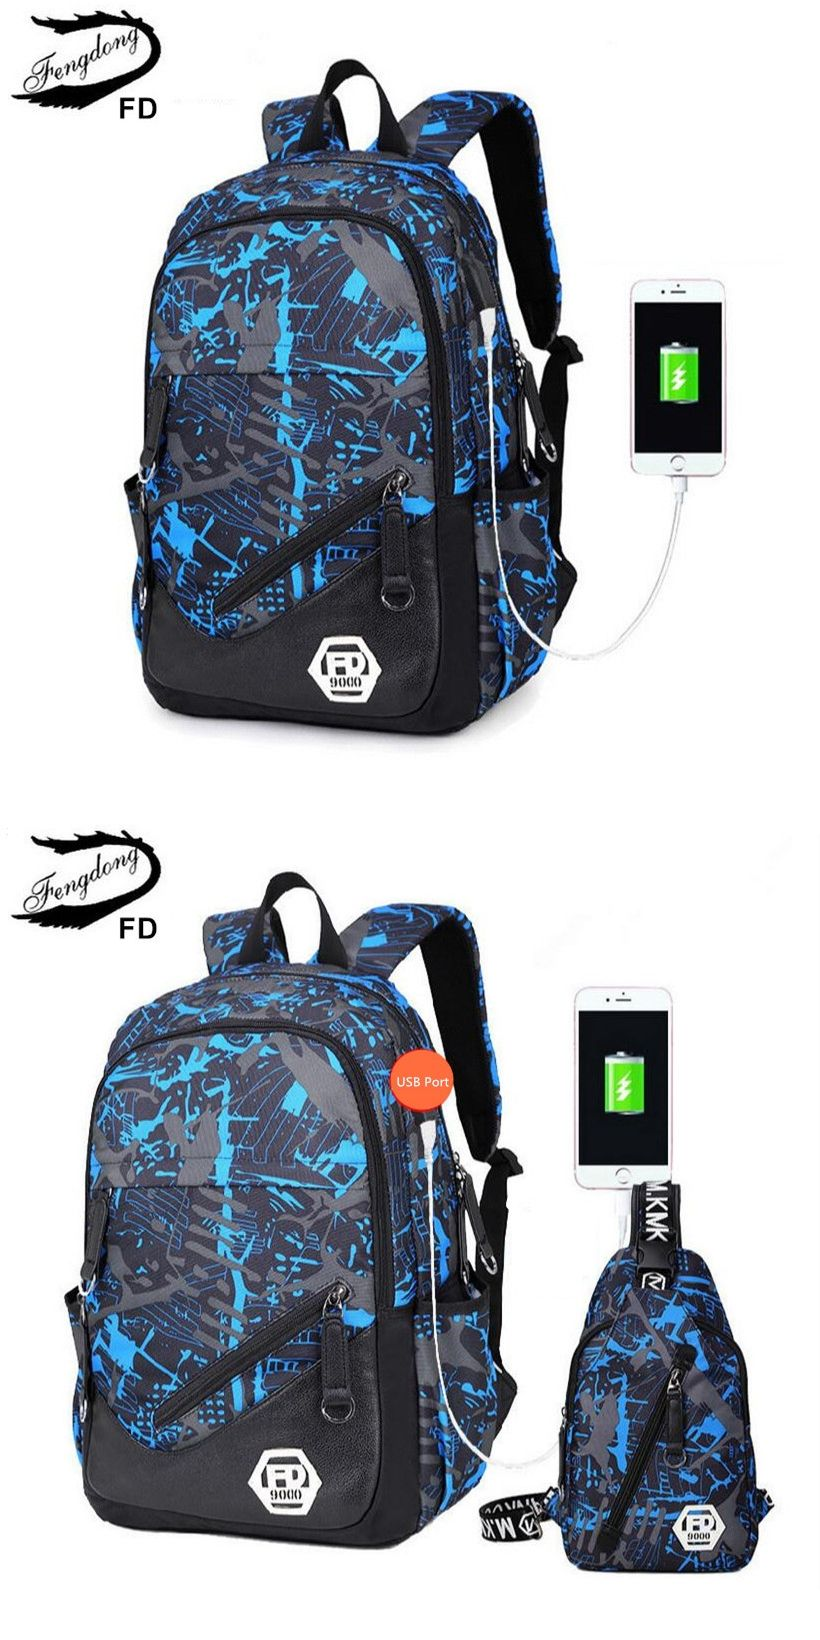 FengDong blue External USB Charge men travel Backpack Male Laptop bag 15.6  college bags high school backpacks for boys rucksack 62c51707db82a